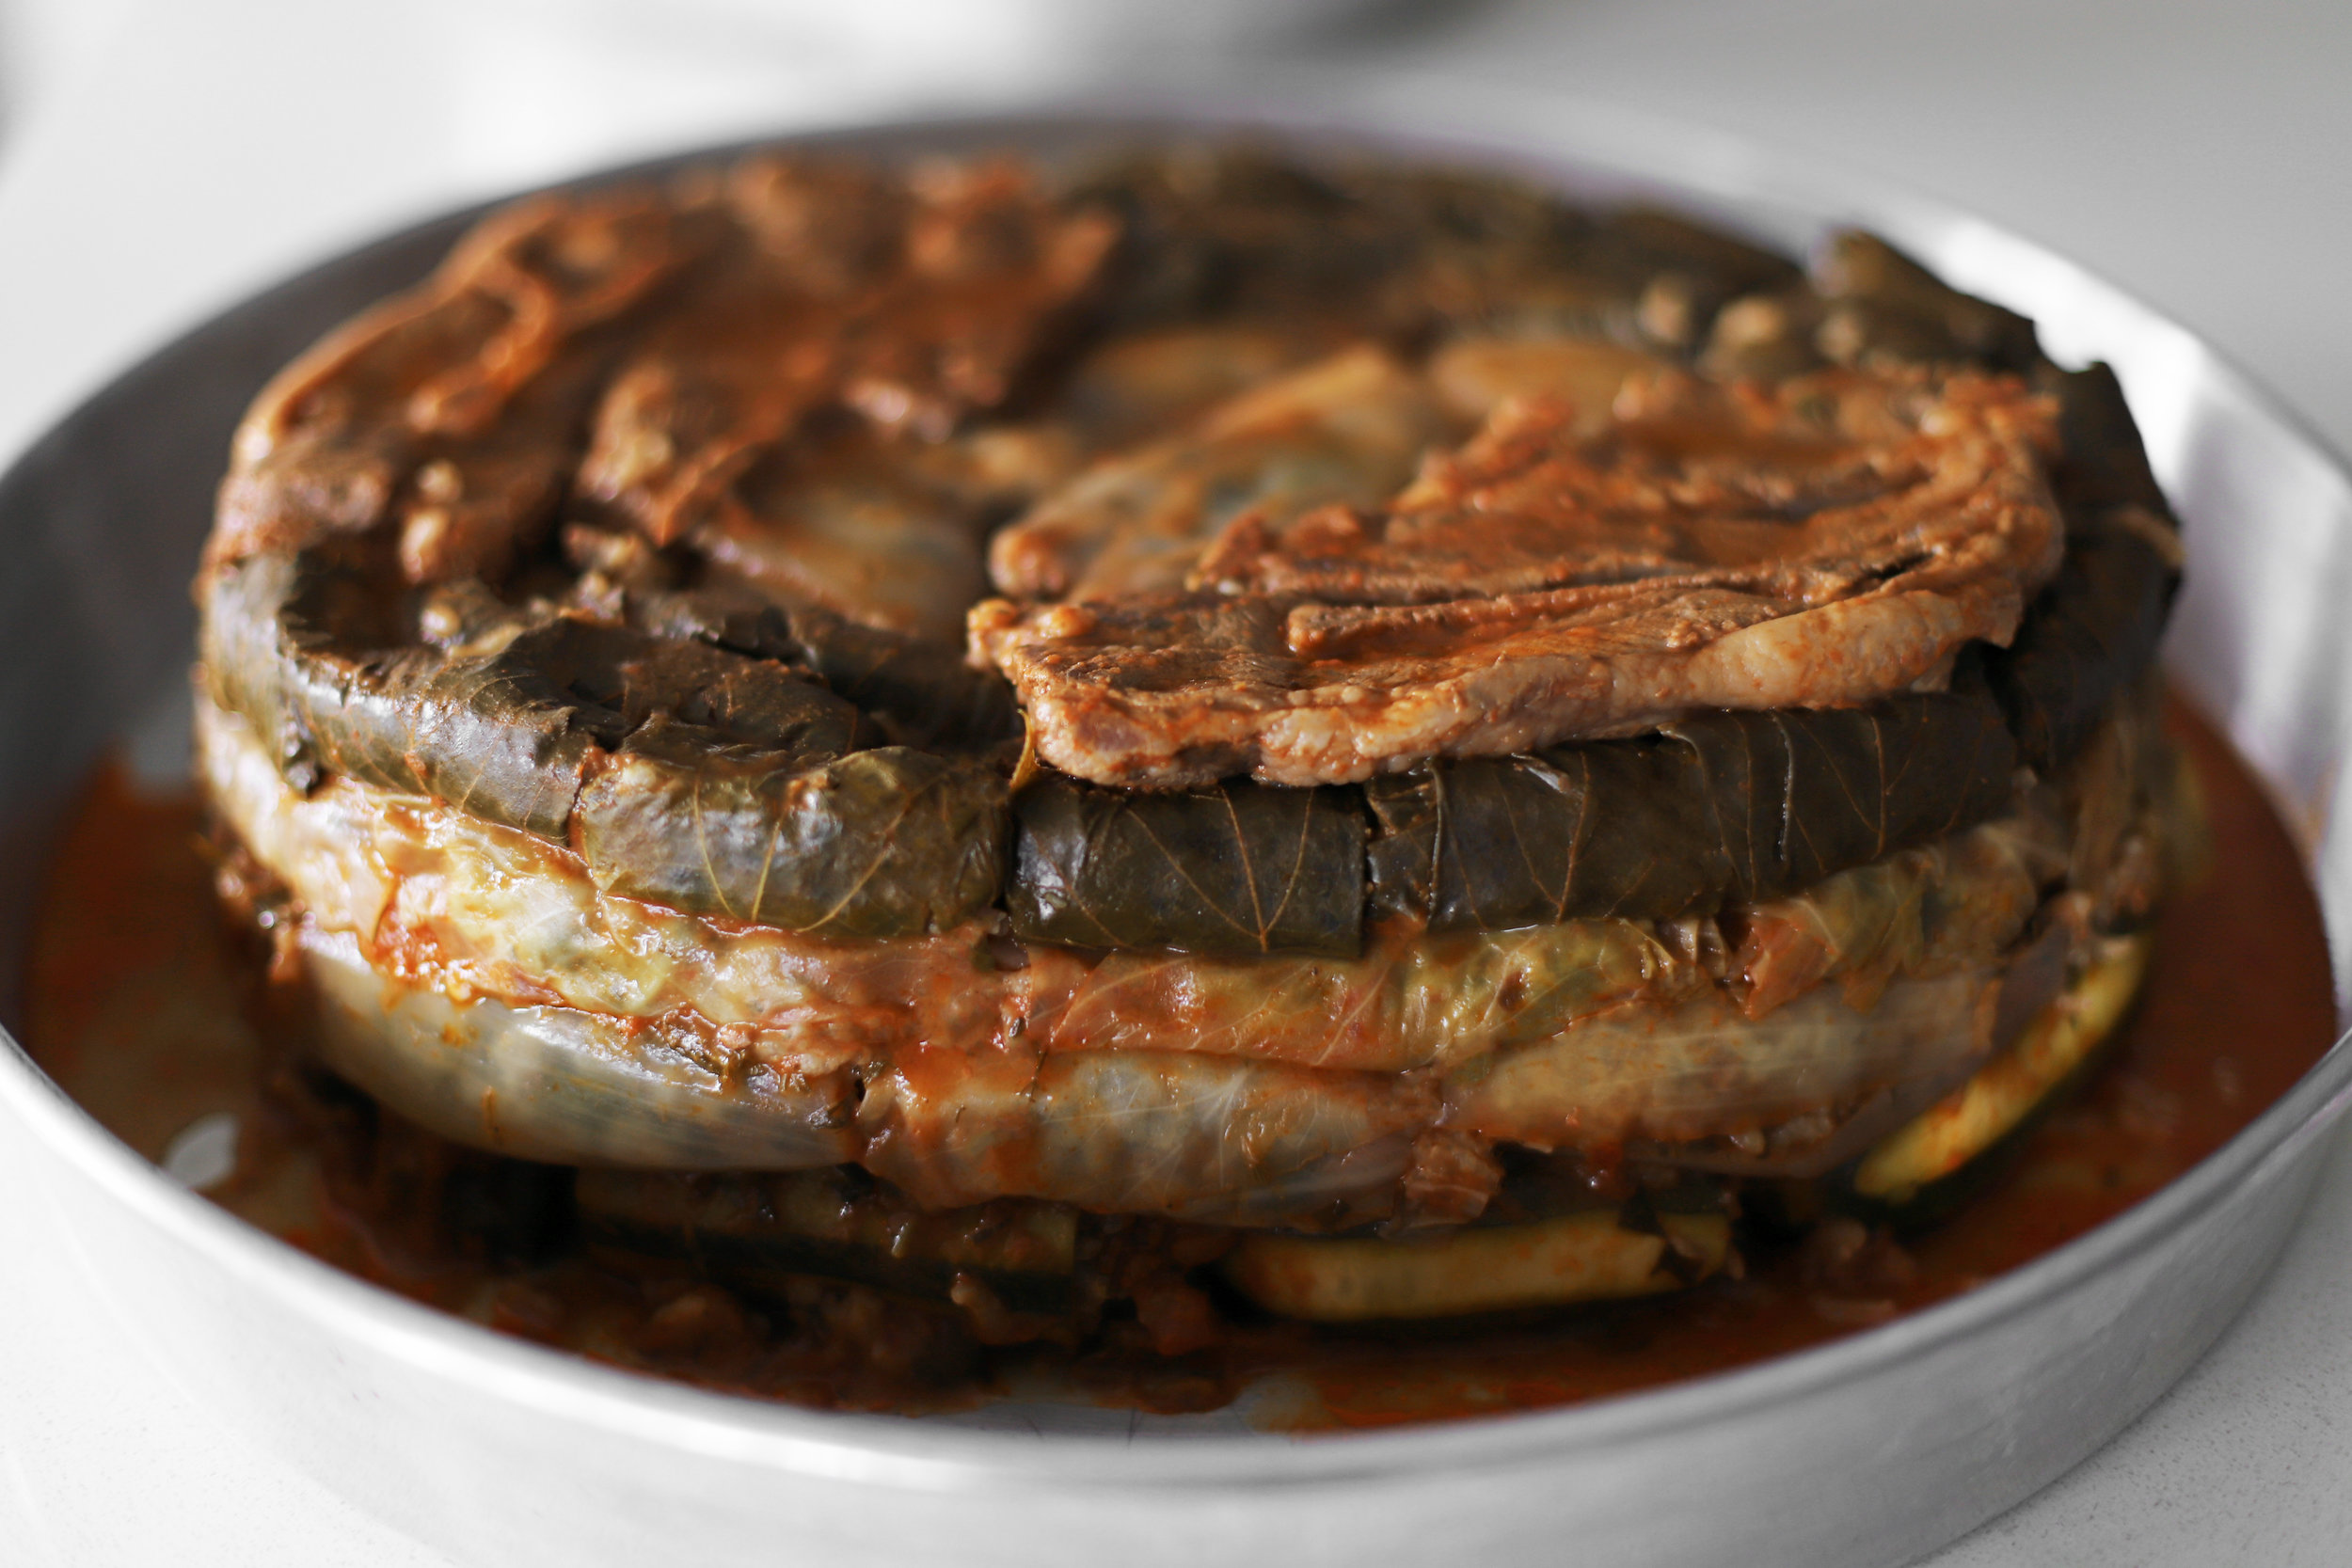 """Dolma khuitah (""""combination"""" dolma)    Dolma is enjoyed all over the Middle East, North Africa, and surrounding areas, and it's another one of those foods that's incredibly diverse. Depending on who's making it and what's being stuffed, one version will taste completely different from another. This is my grandmother's """"combination"""" dolma, which has a lot of grape leaves, cabbage leaves, and zucchini, and is simmered in vegetable juice. It's basically my favorite thing in the entire world."""